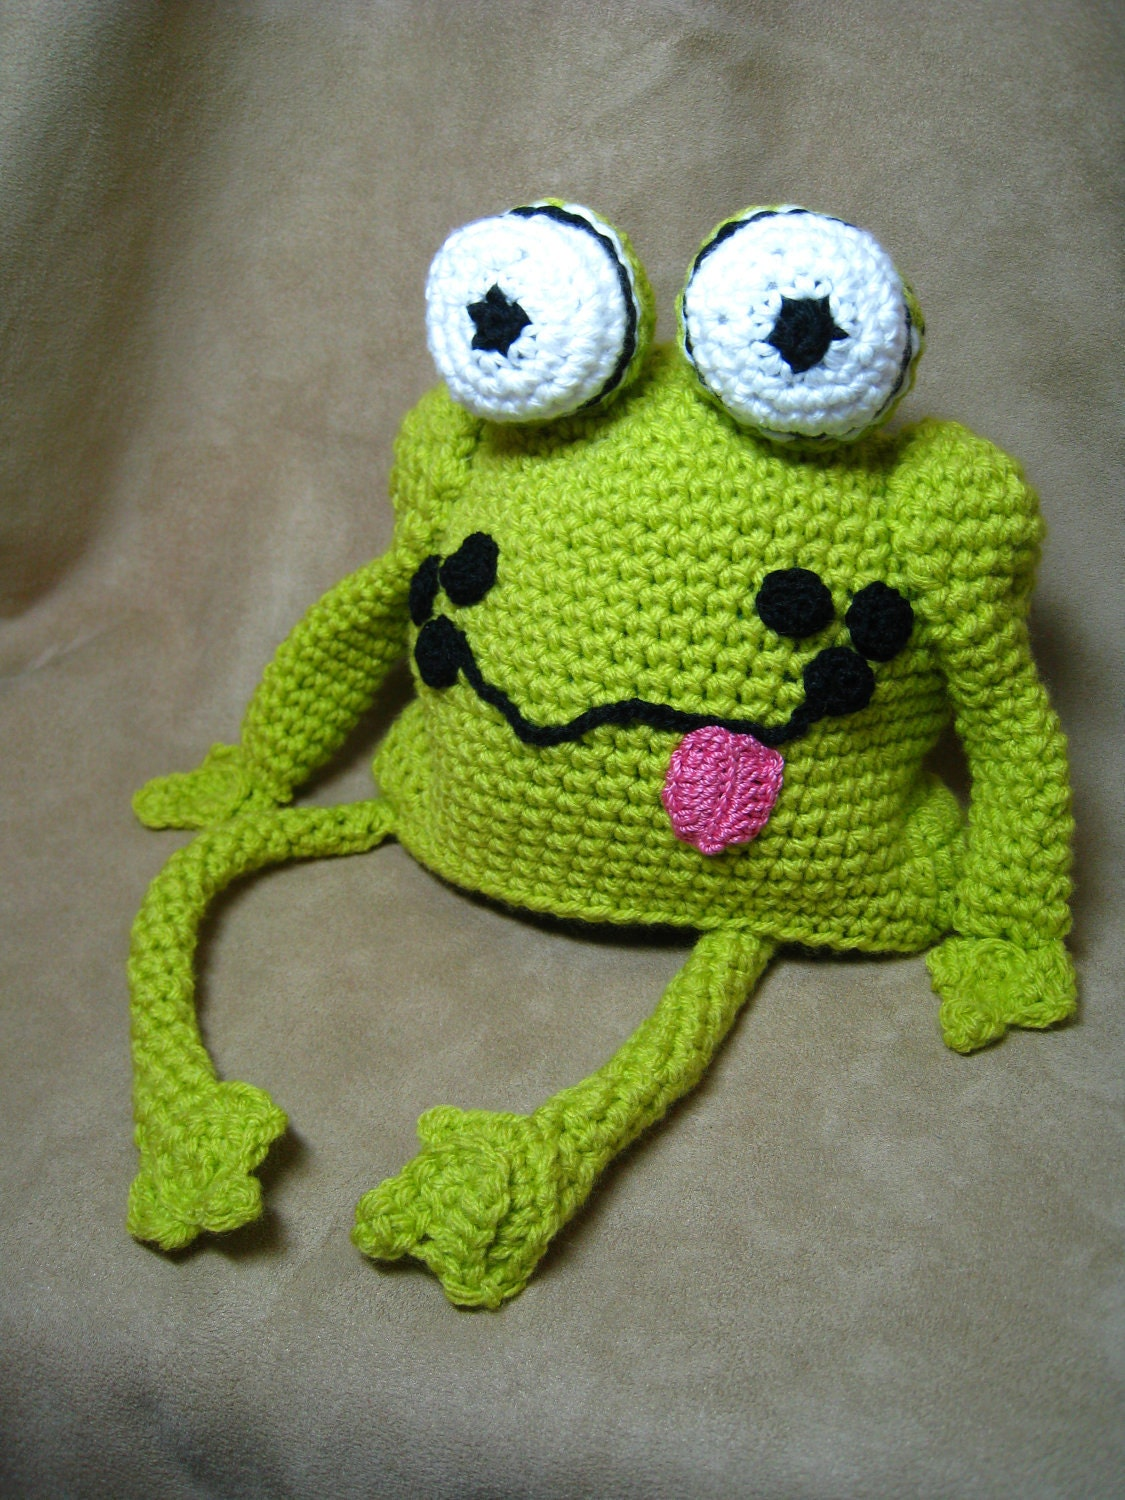 crochet pattern frog hat crochet baby patternchildren. Black Bedroom Furniture Sets. Home Design Ideas